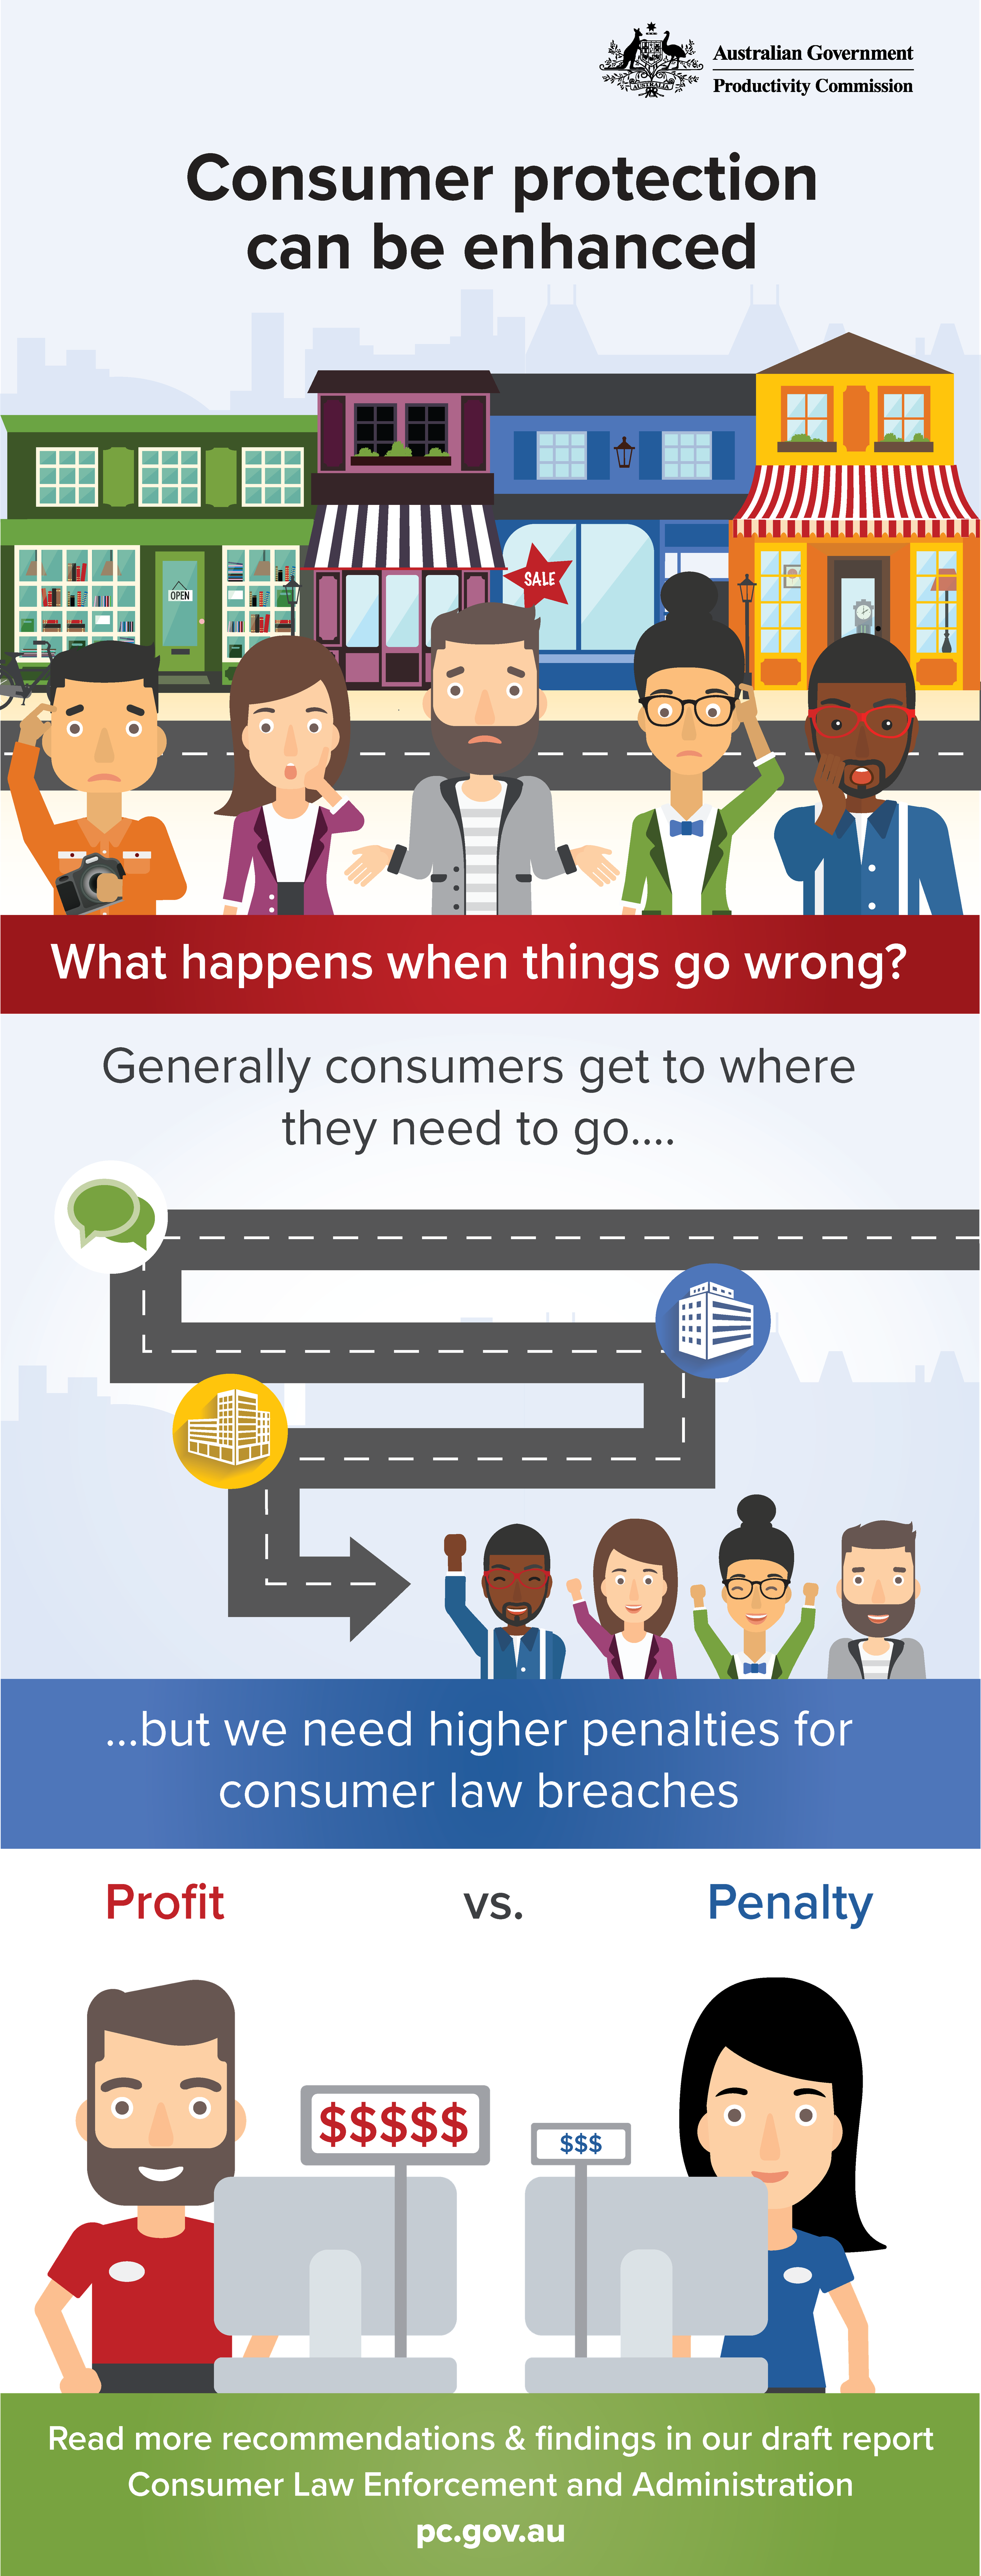 Consumer protection can be enhanced infographic. Text version follows.